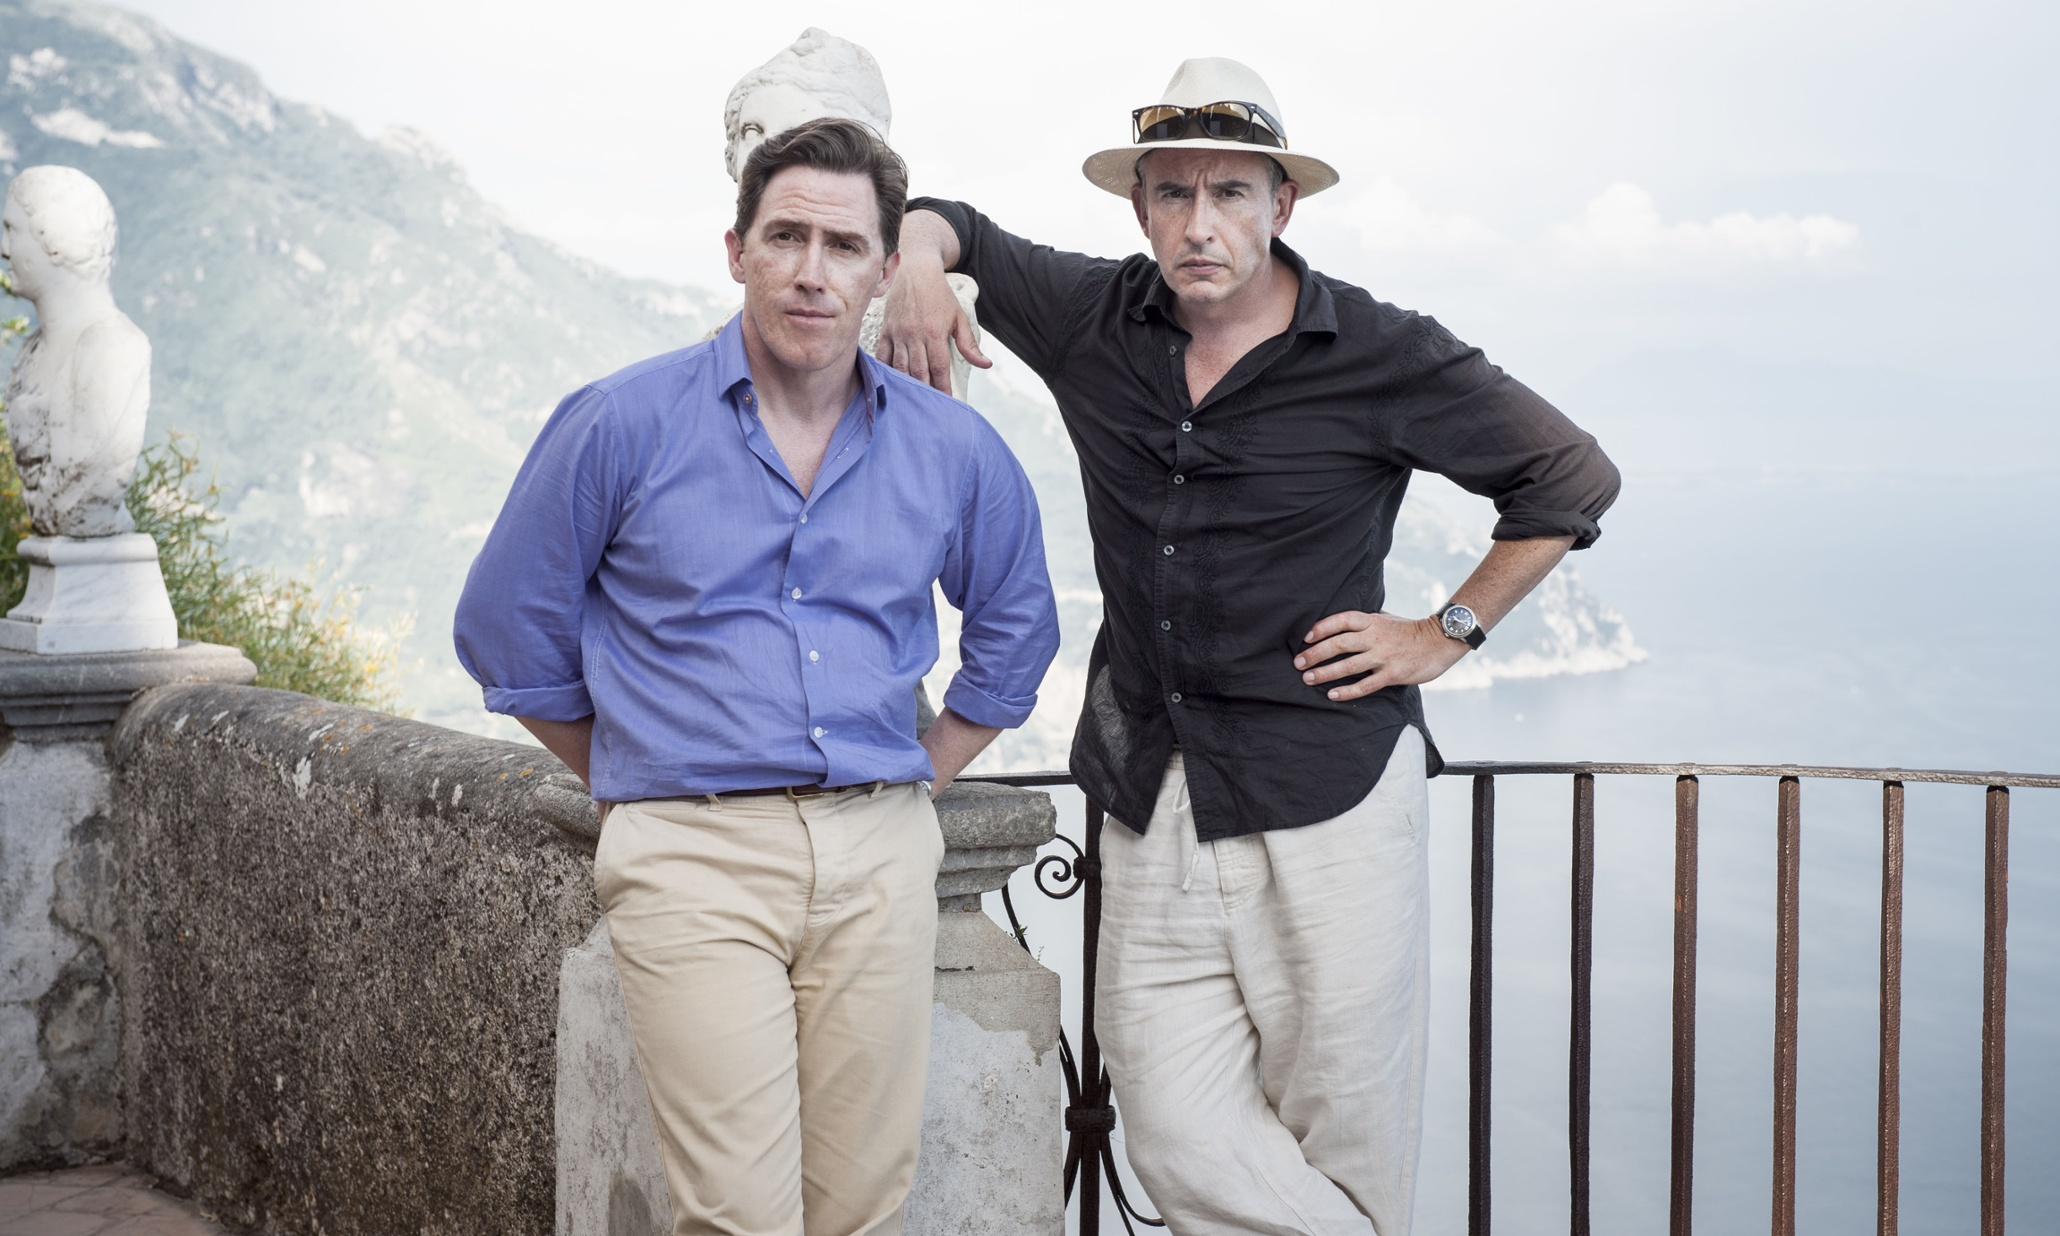 Sam Wollaston: Was the Steve Coogan and Rob Brydon vehicle a travelogue, a comedy, a food show, scripted reality, or something else entirely? Or was it simply as good as television gets?